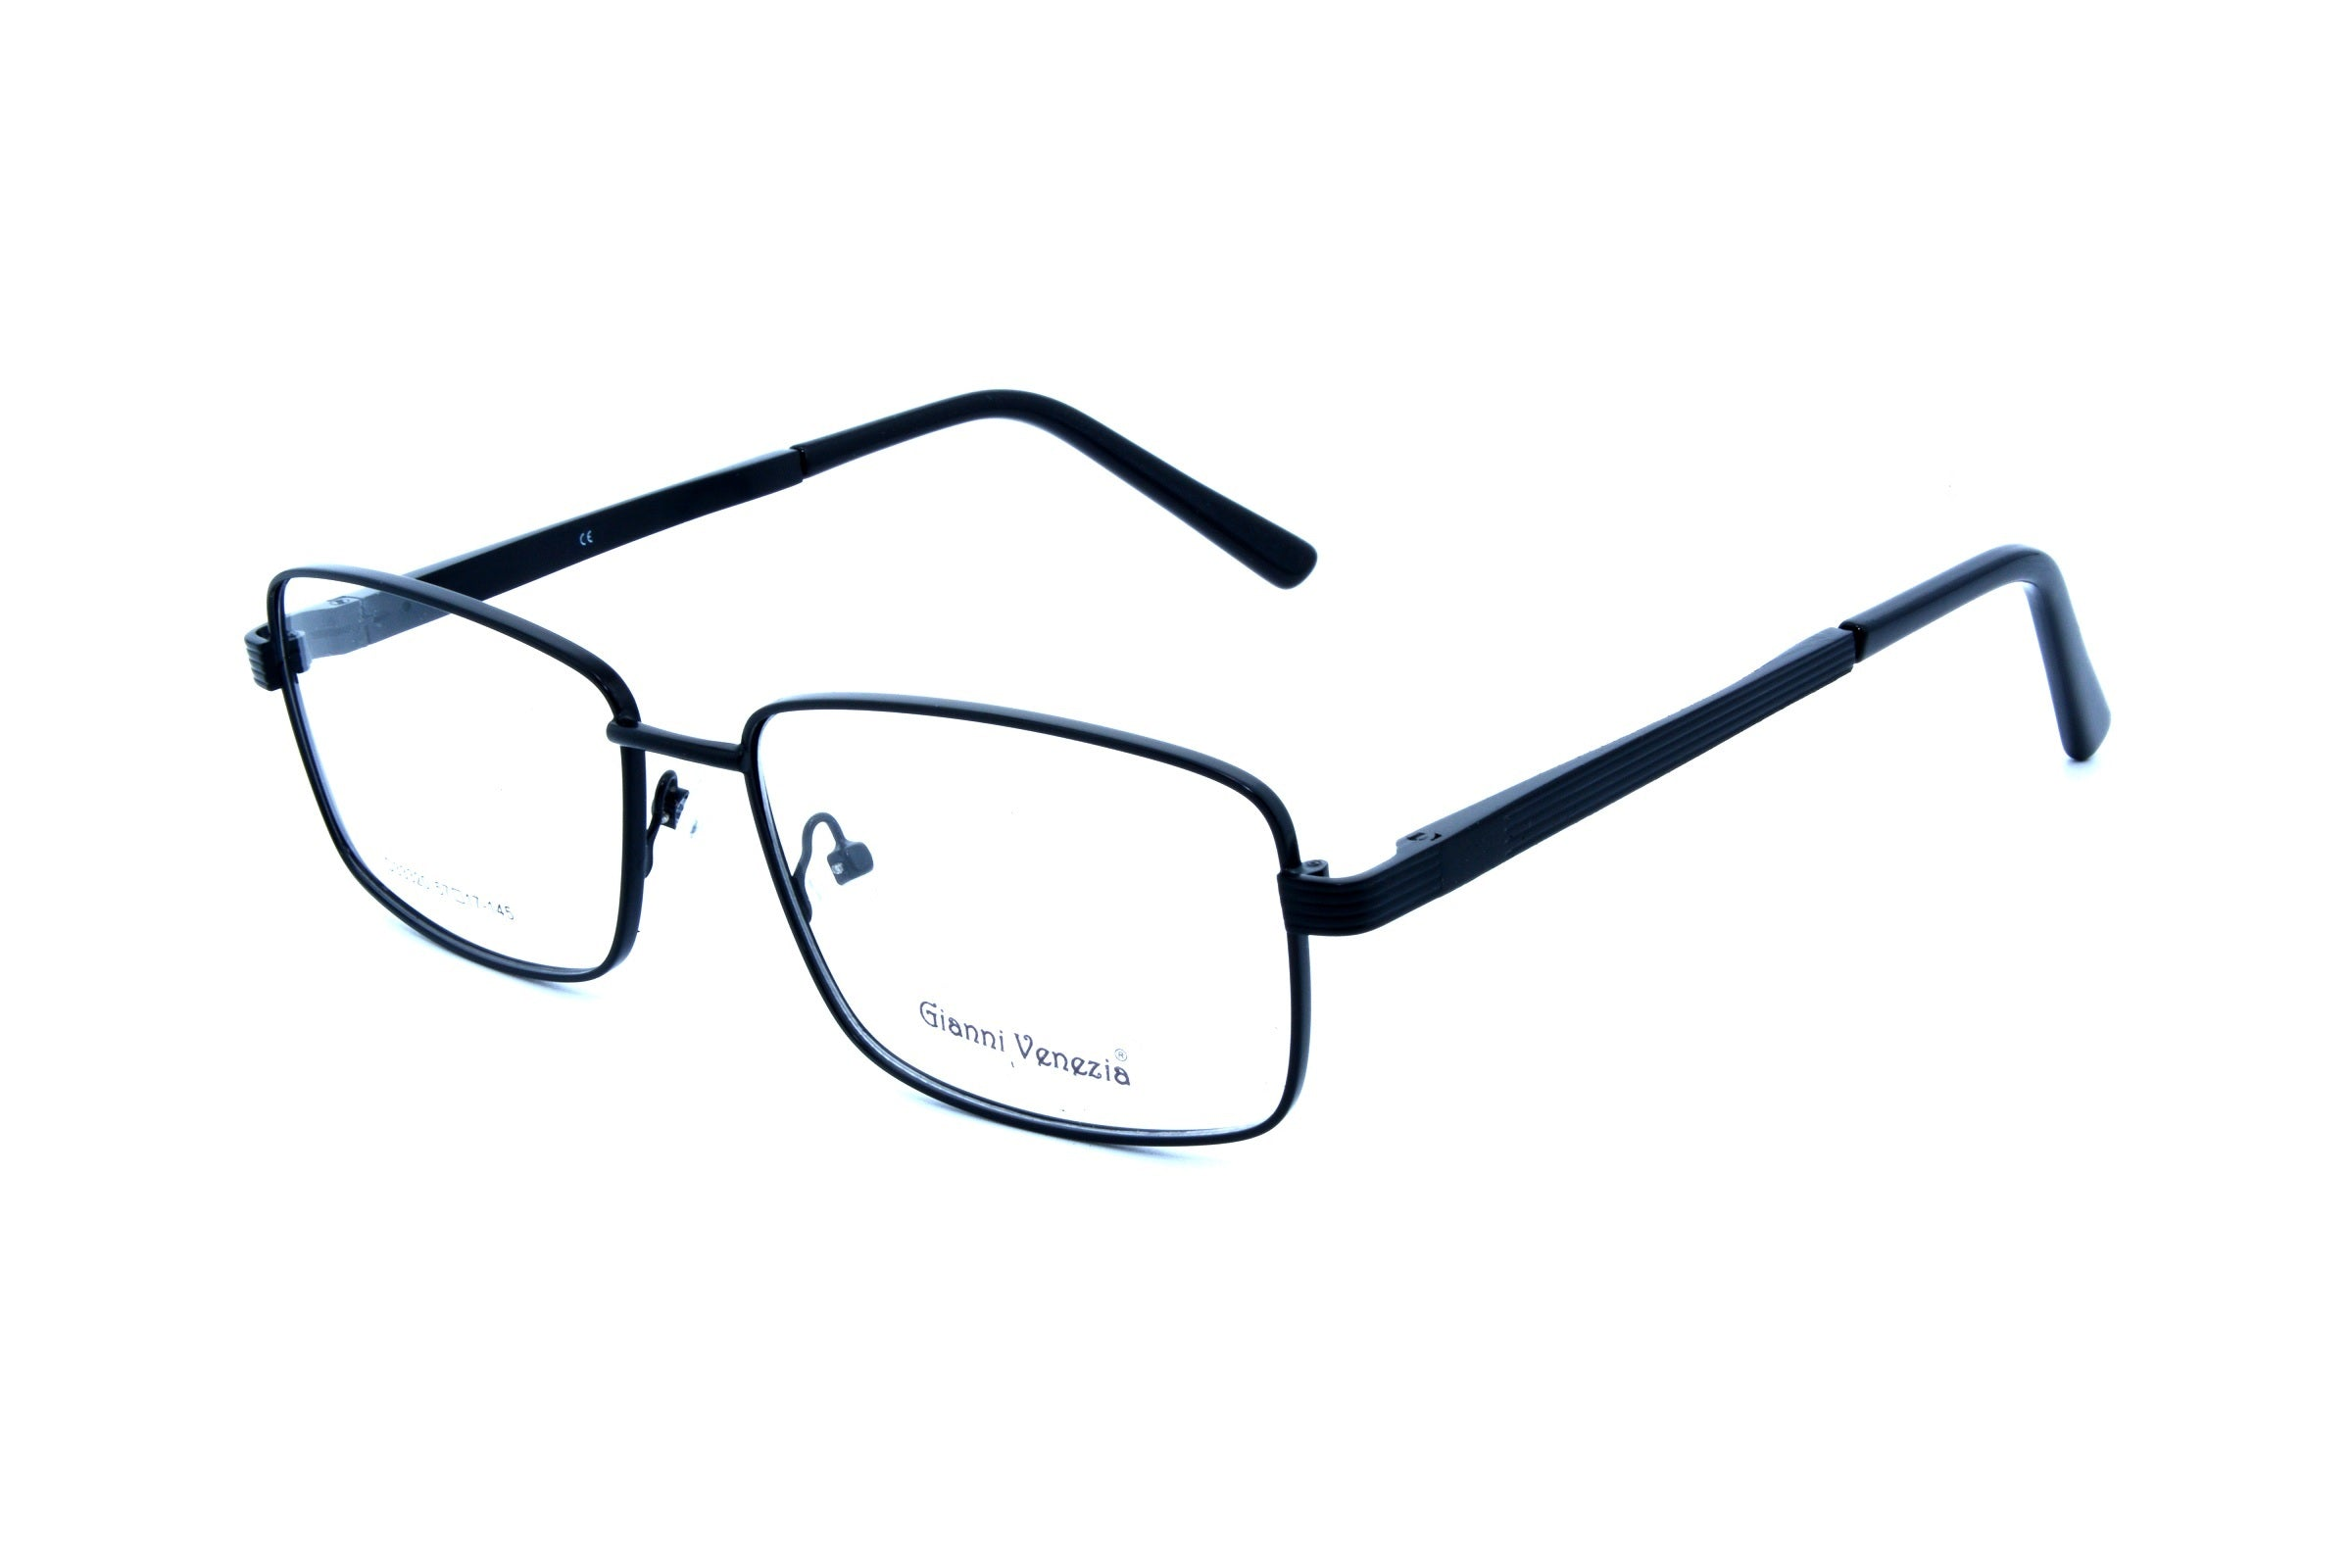 Gianni Venezia eyewear D33320, C1 - Optics Trading